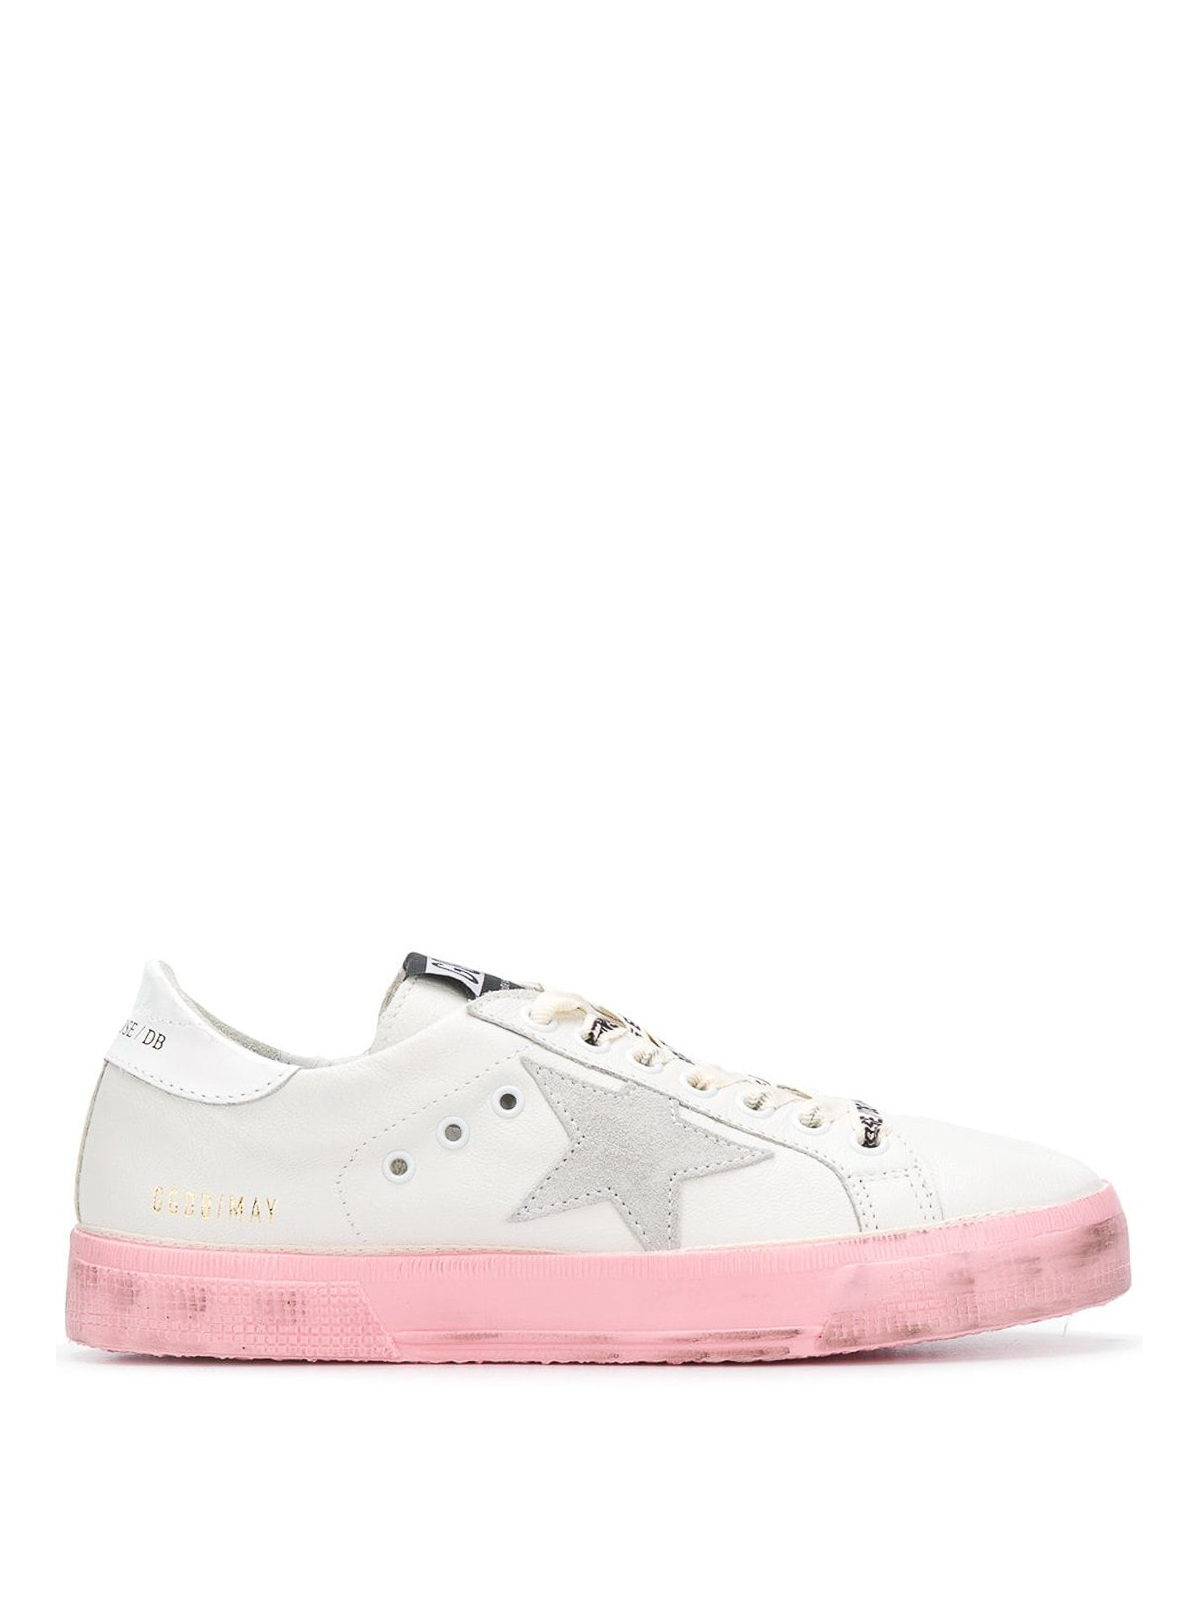 8c34bc5e89856 Golden Goose - May pink sole leather sneakers - trainers - G33WS127I8